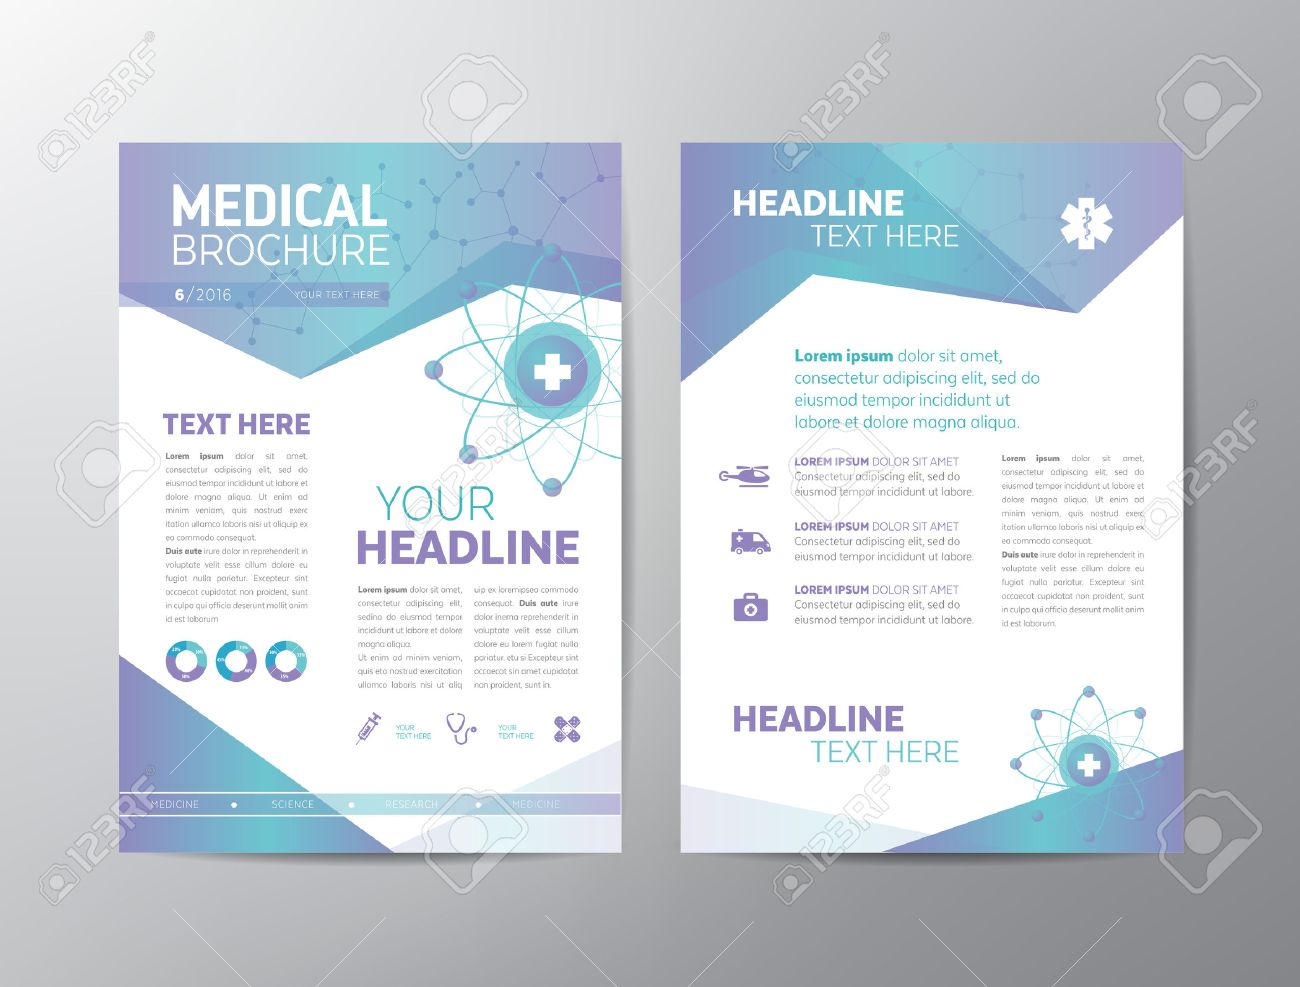 healthcare brochure templates.html